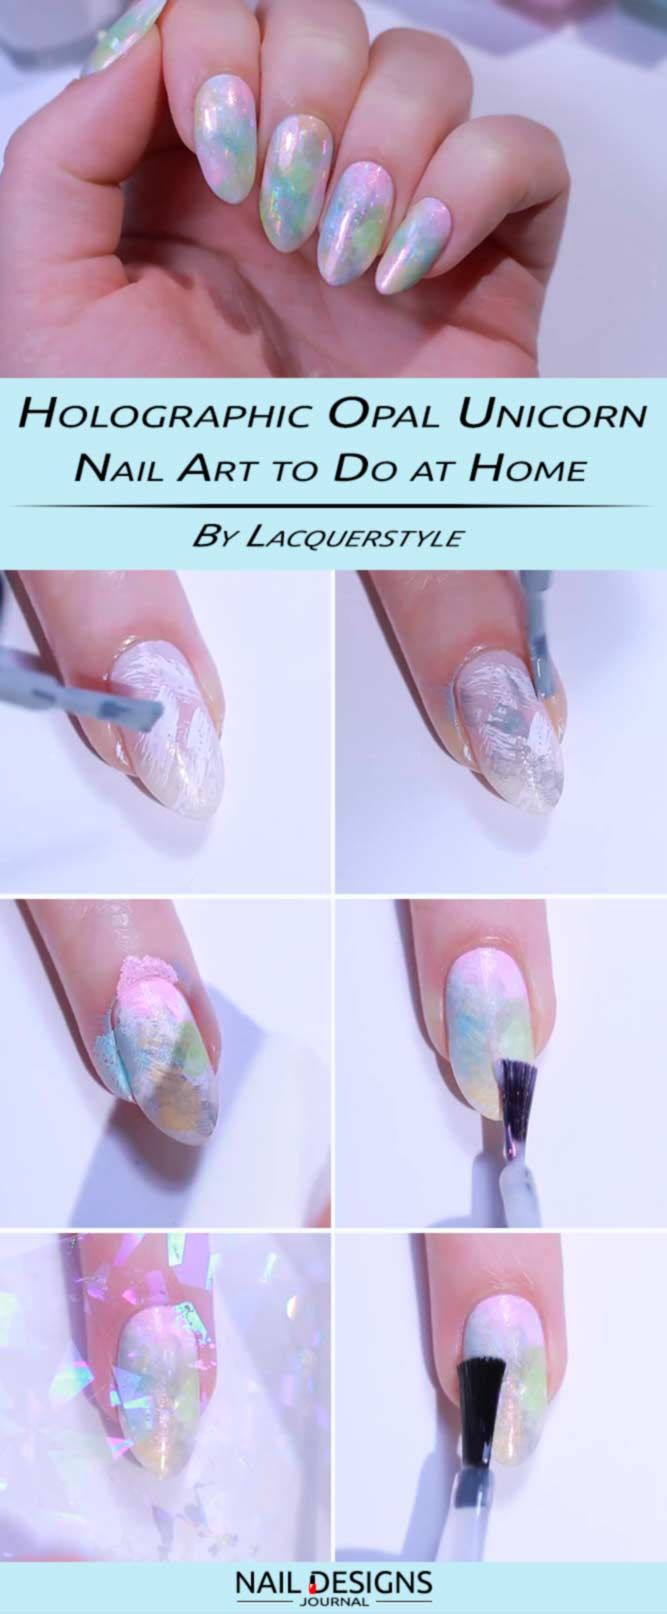 Watch 20 Amazing Short Nail Designs You Must Love video